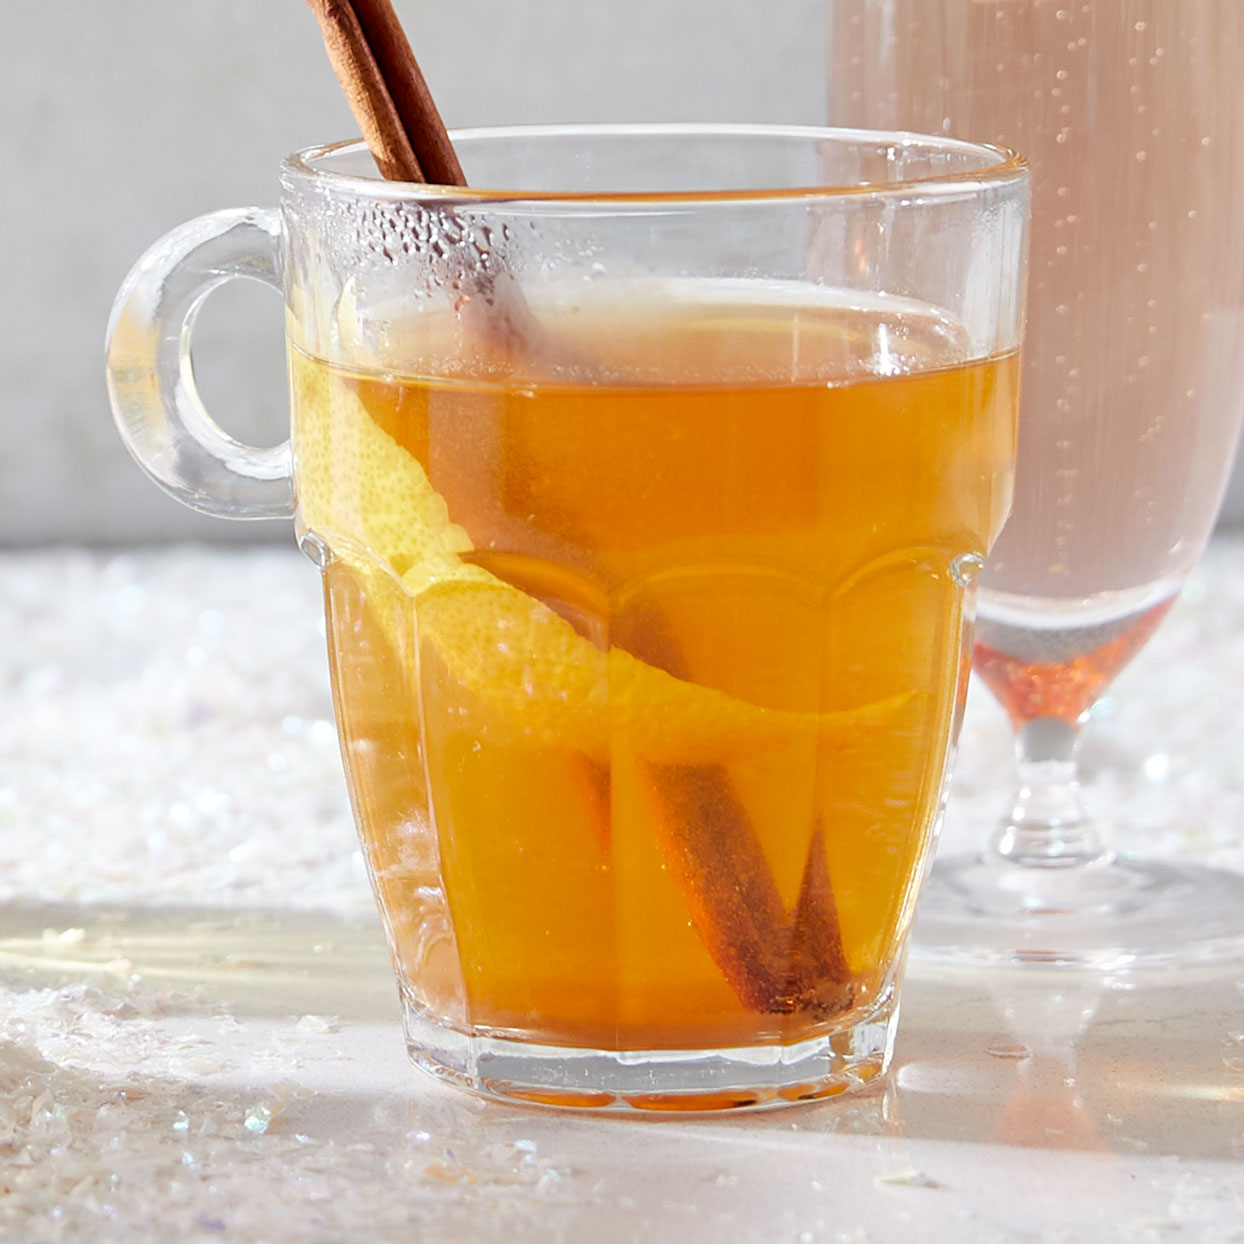 Flavored decaf tea adds a seasonal twist to a traditional hot toddy recipe. You can use any flavor of tea for this easy cocktail, but we love the comforting notes of pumpkin-spice in the fall and winter.